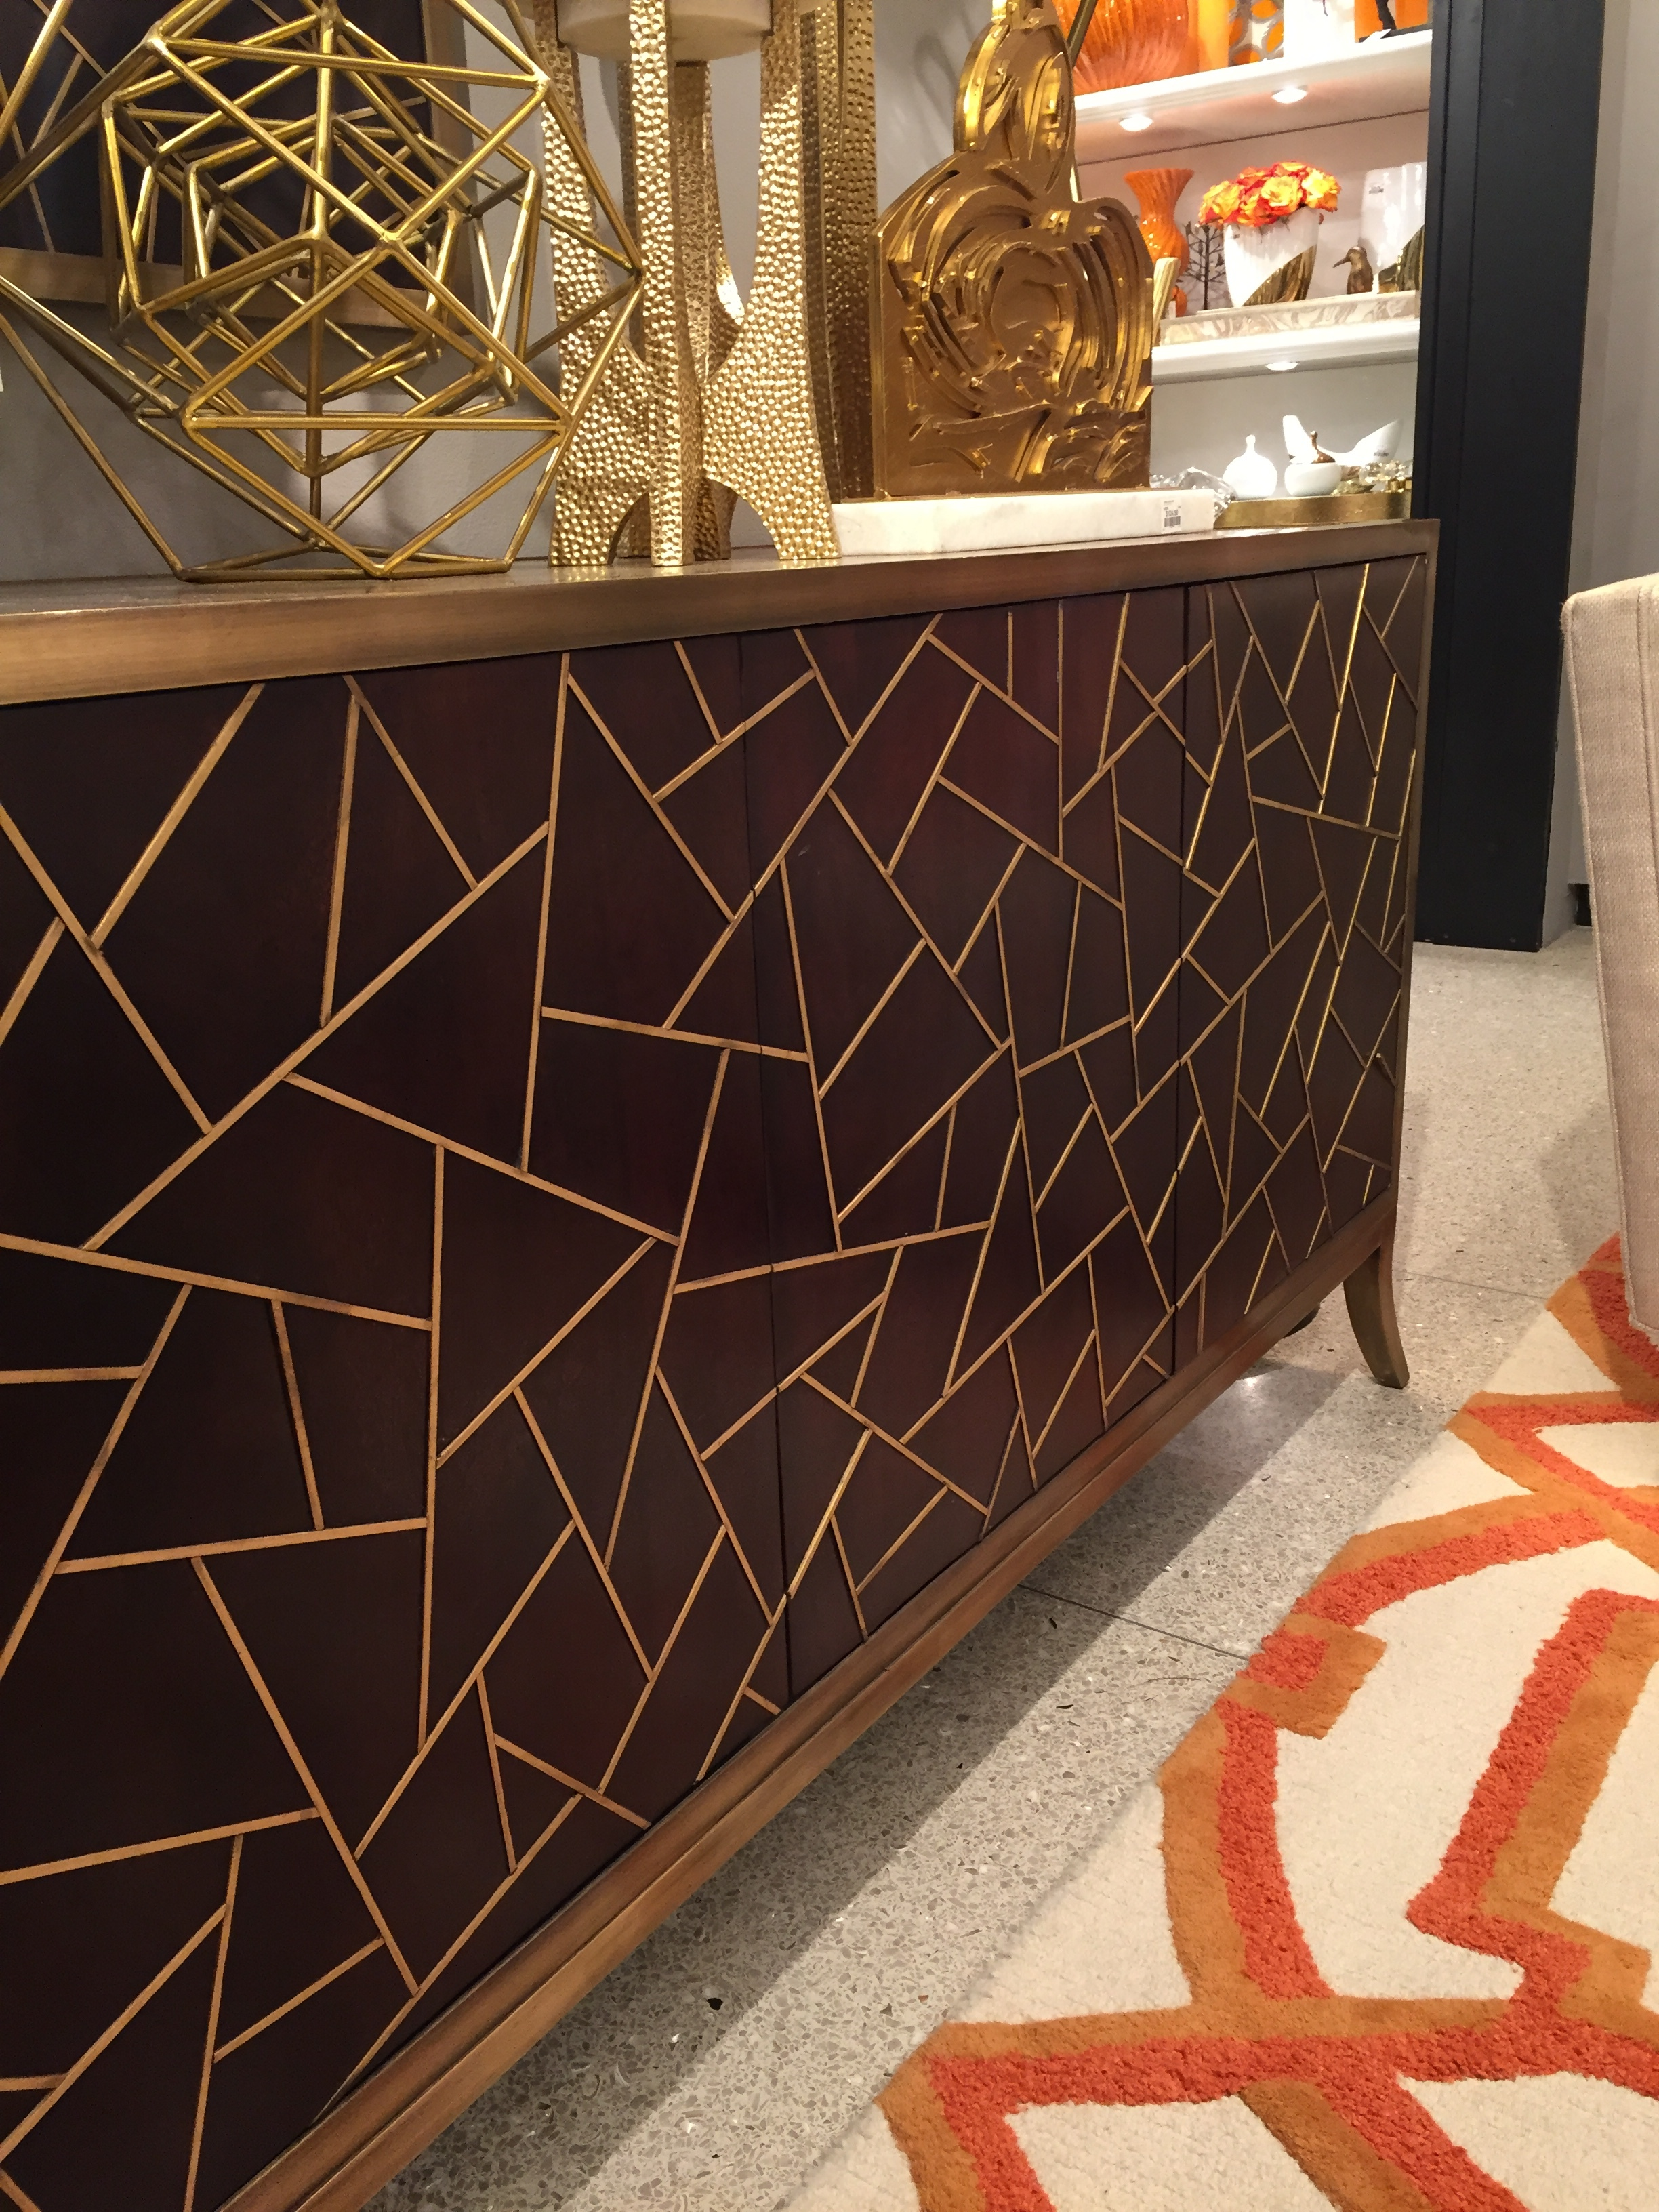 This tangier media cabinet from Global Views is a show stopper! The magnificent metal inlay on the doors is gorgeous. Paired with the geometric rug is fantastic!